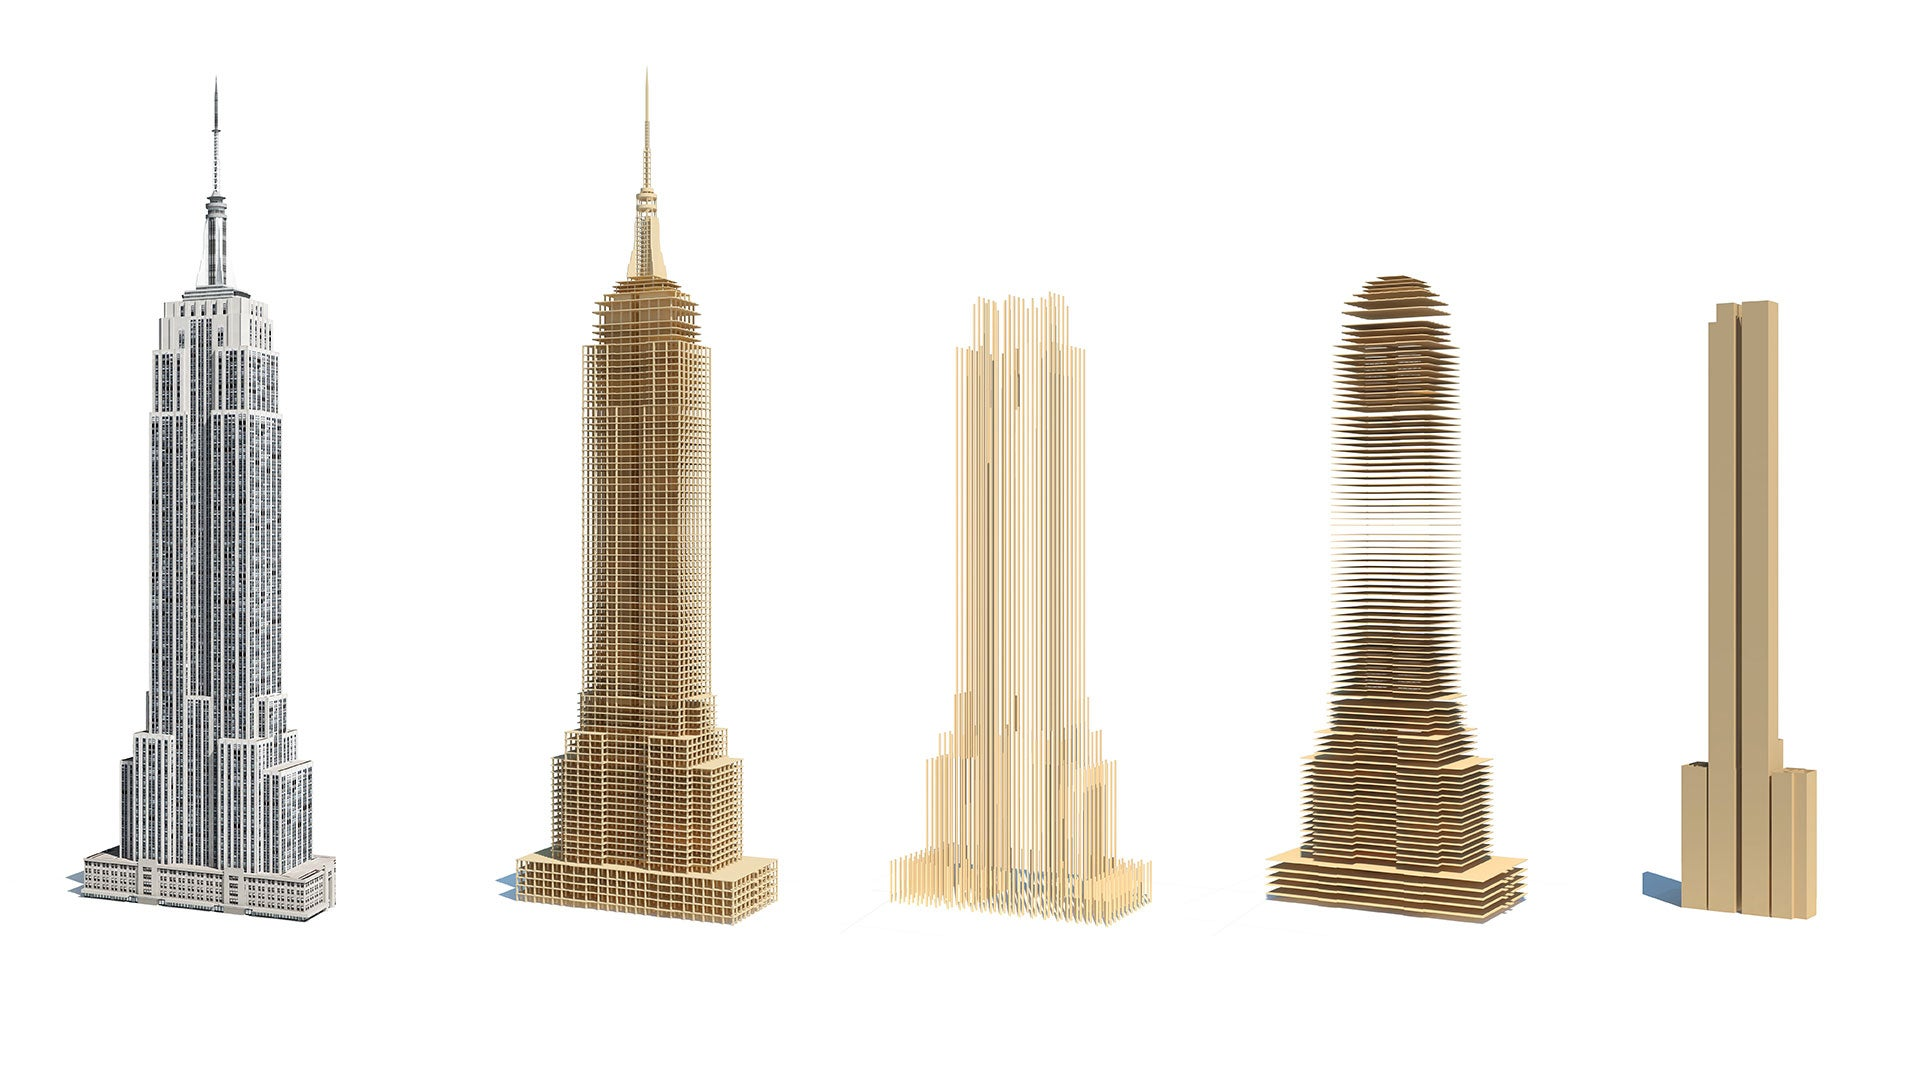 Could The Empire State Building Be Built With Wood?